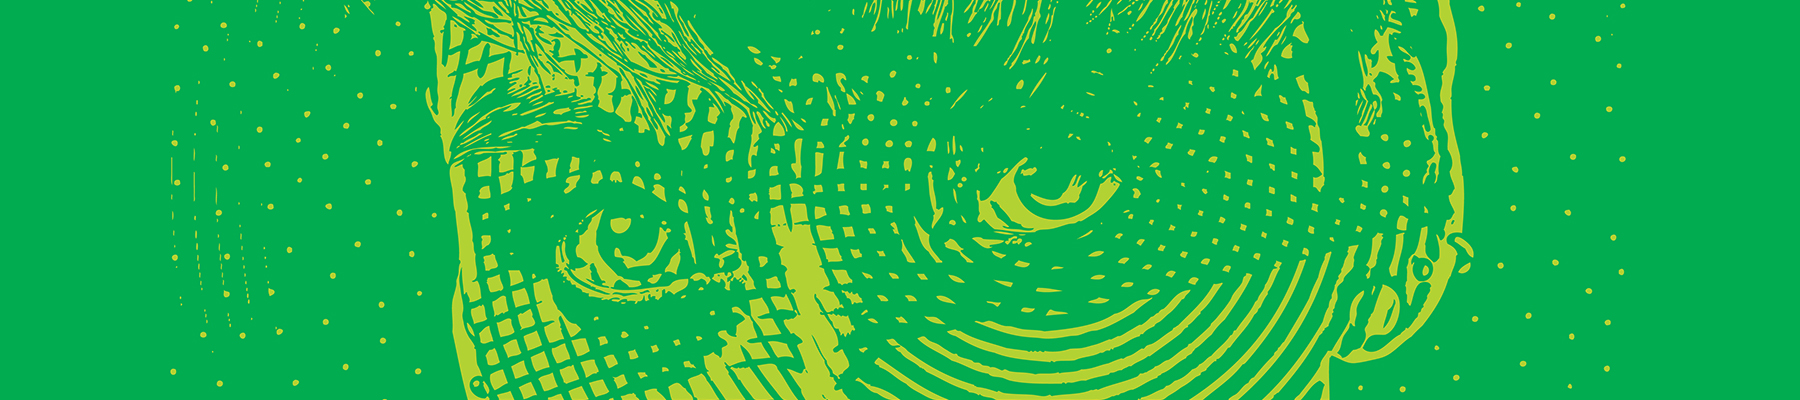 Green and yellow illustration of a super hero's eyes up close